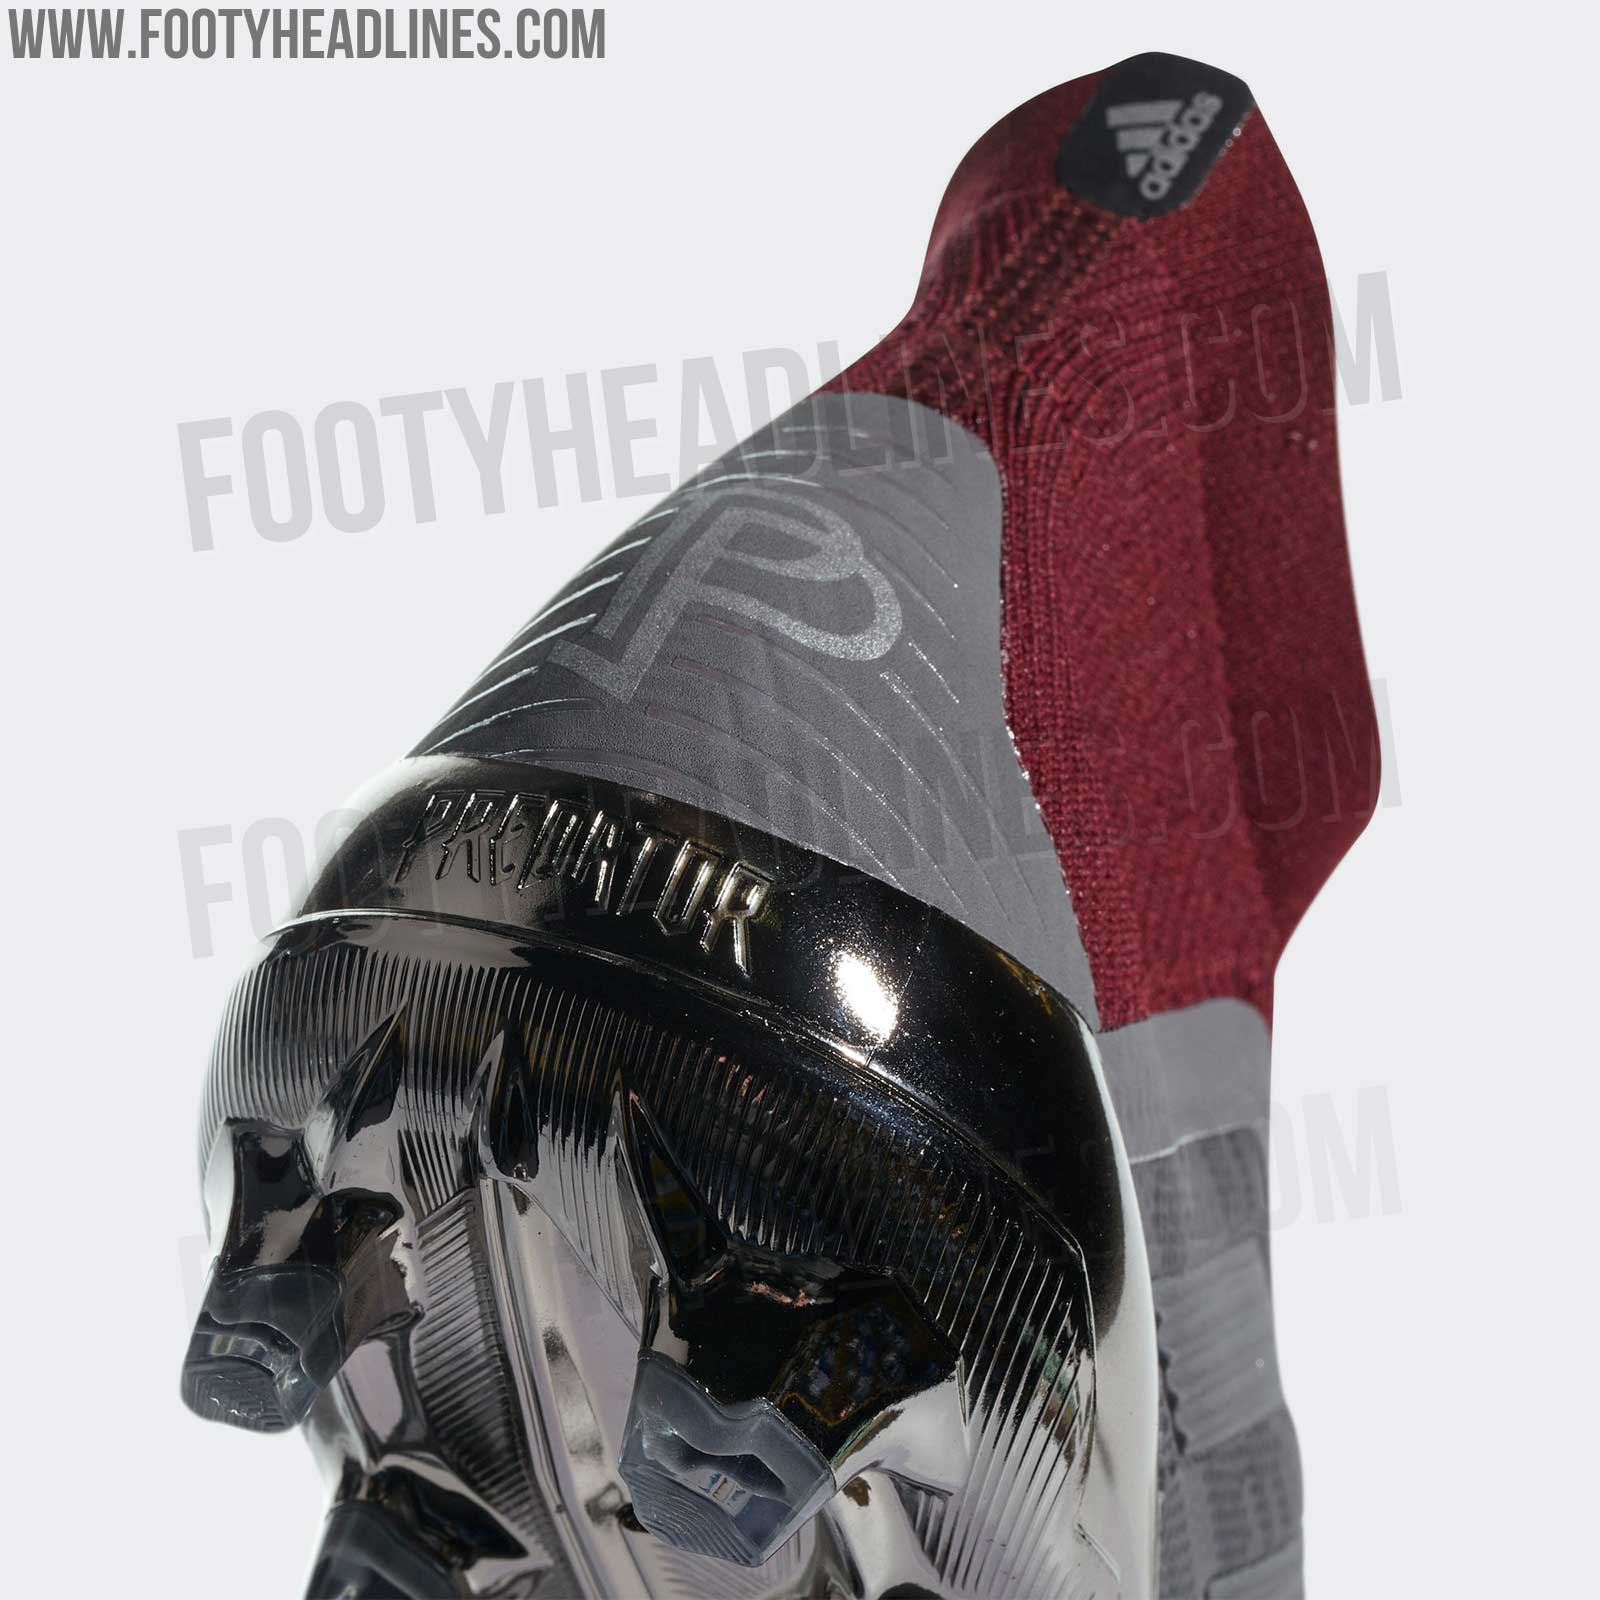 Full Adidas Paul Pogba Season 3 'Predator' Collection Leaked